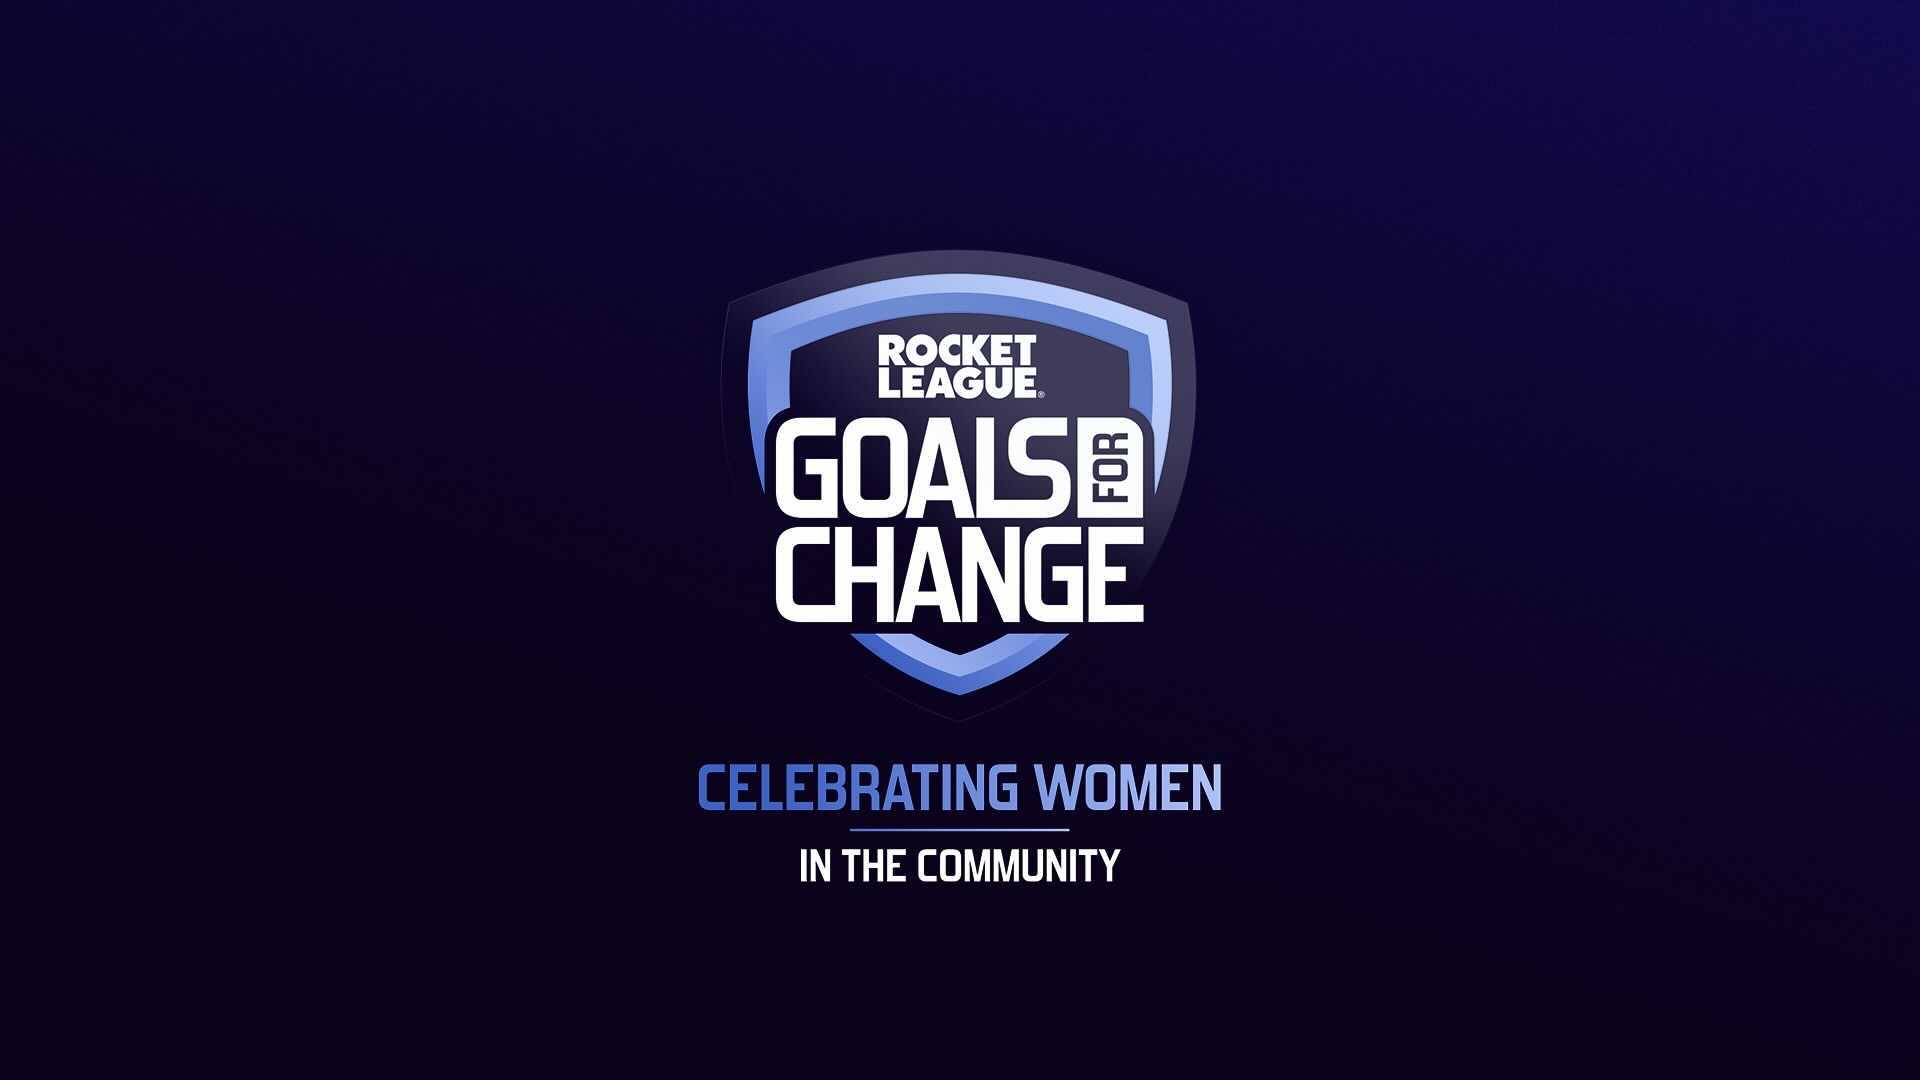 Rocket League Goals For Change